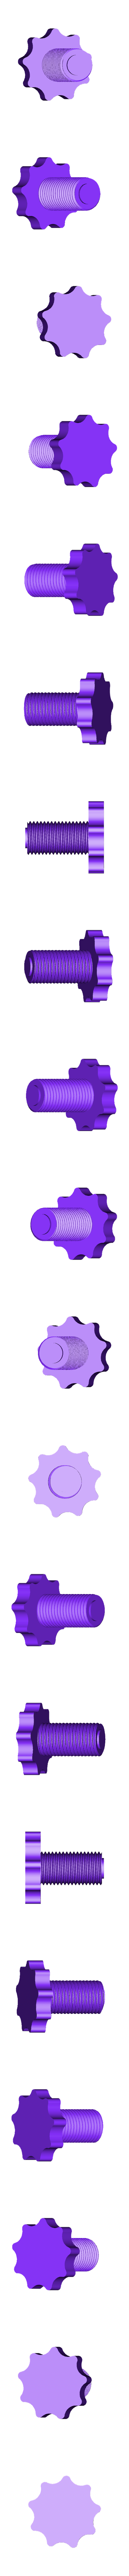 Bottle_Top_Squasher_Screw.stl Download free STL file Bottle Cap Squasher / Nut Cracker • 3D print object, OwtFromNowt